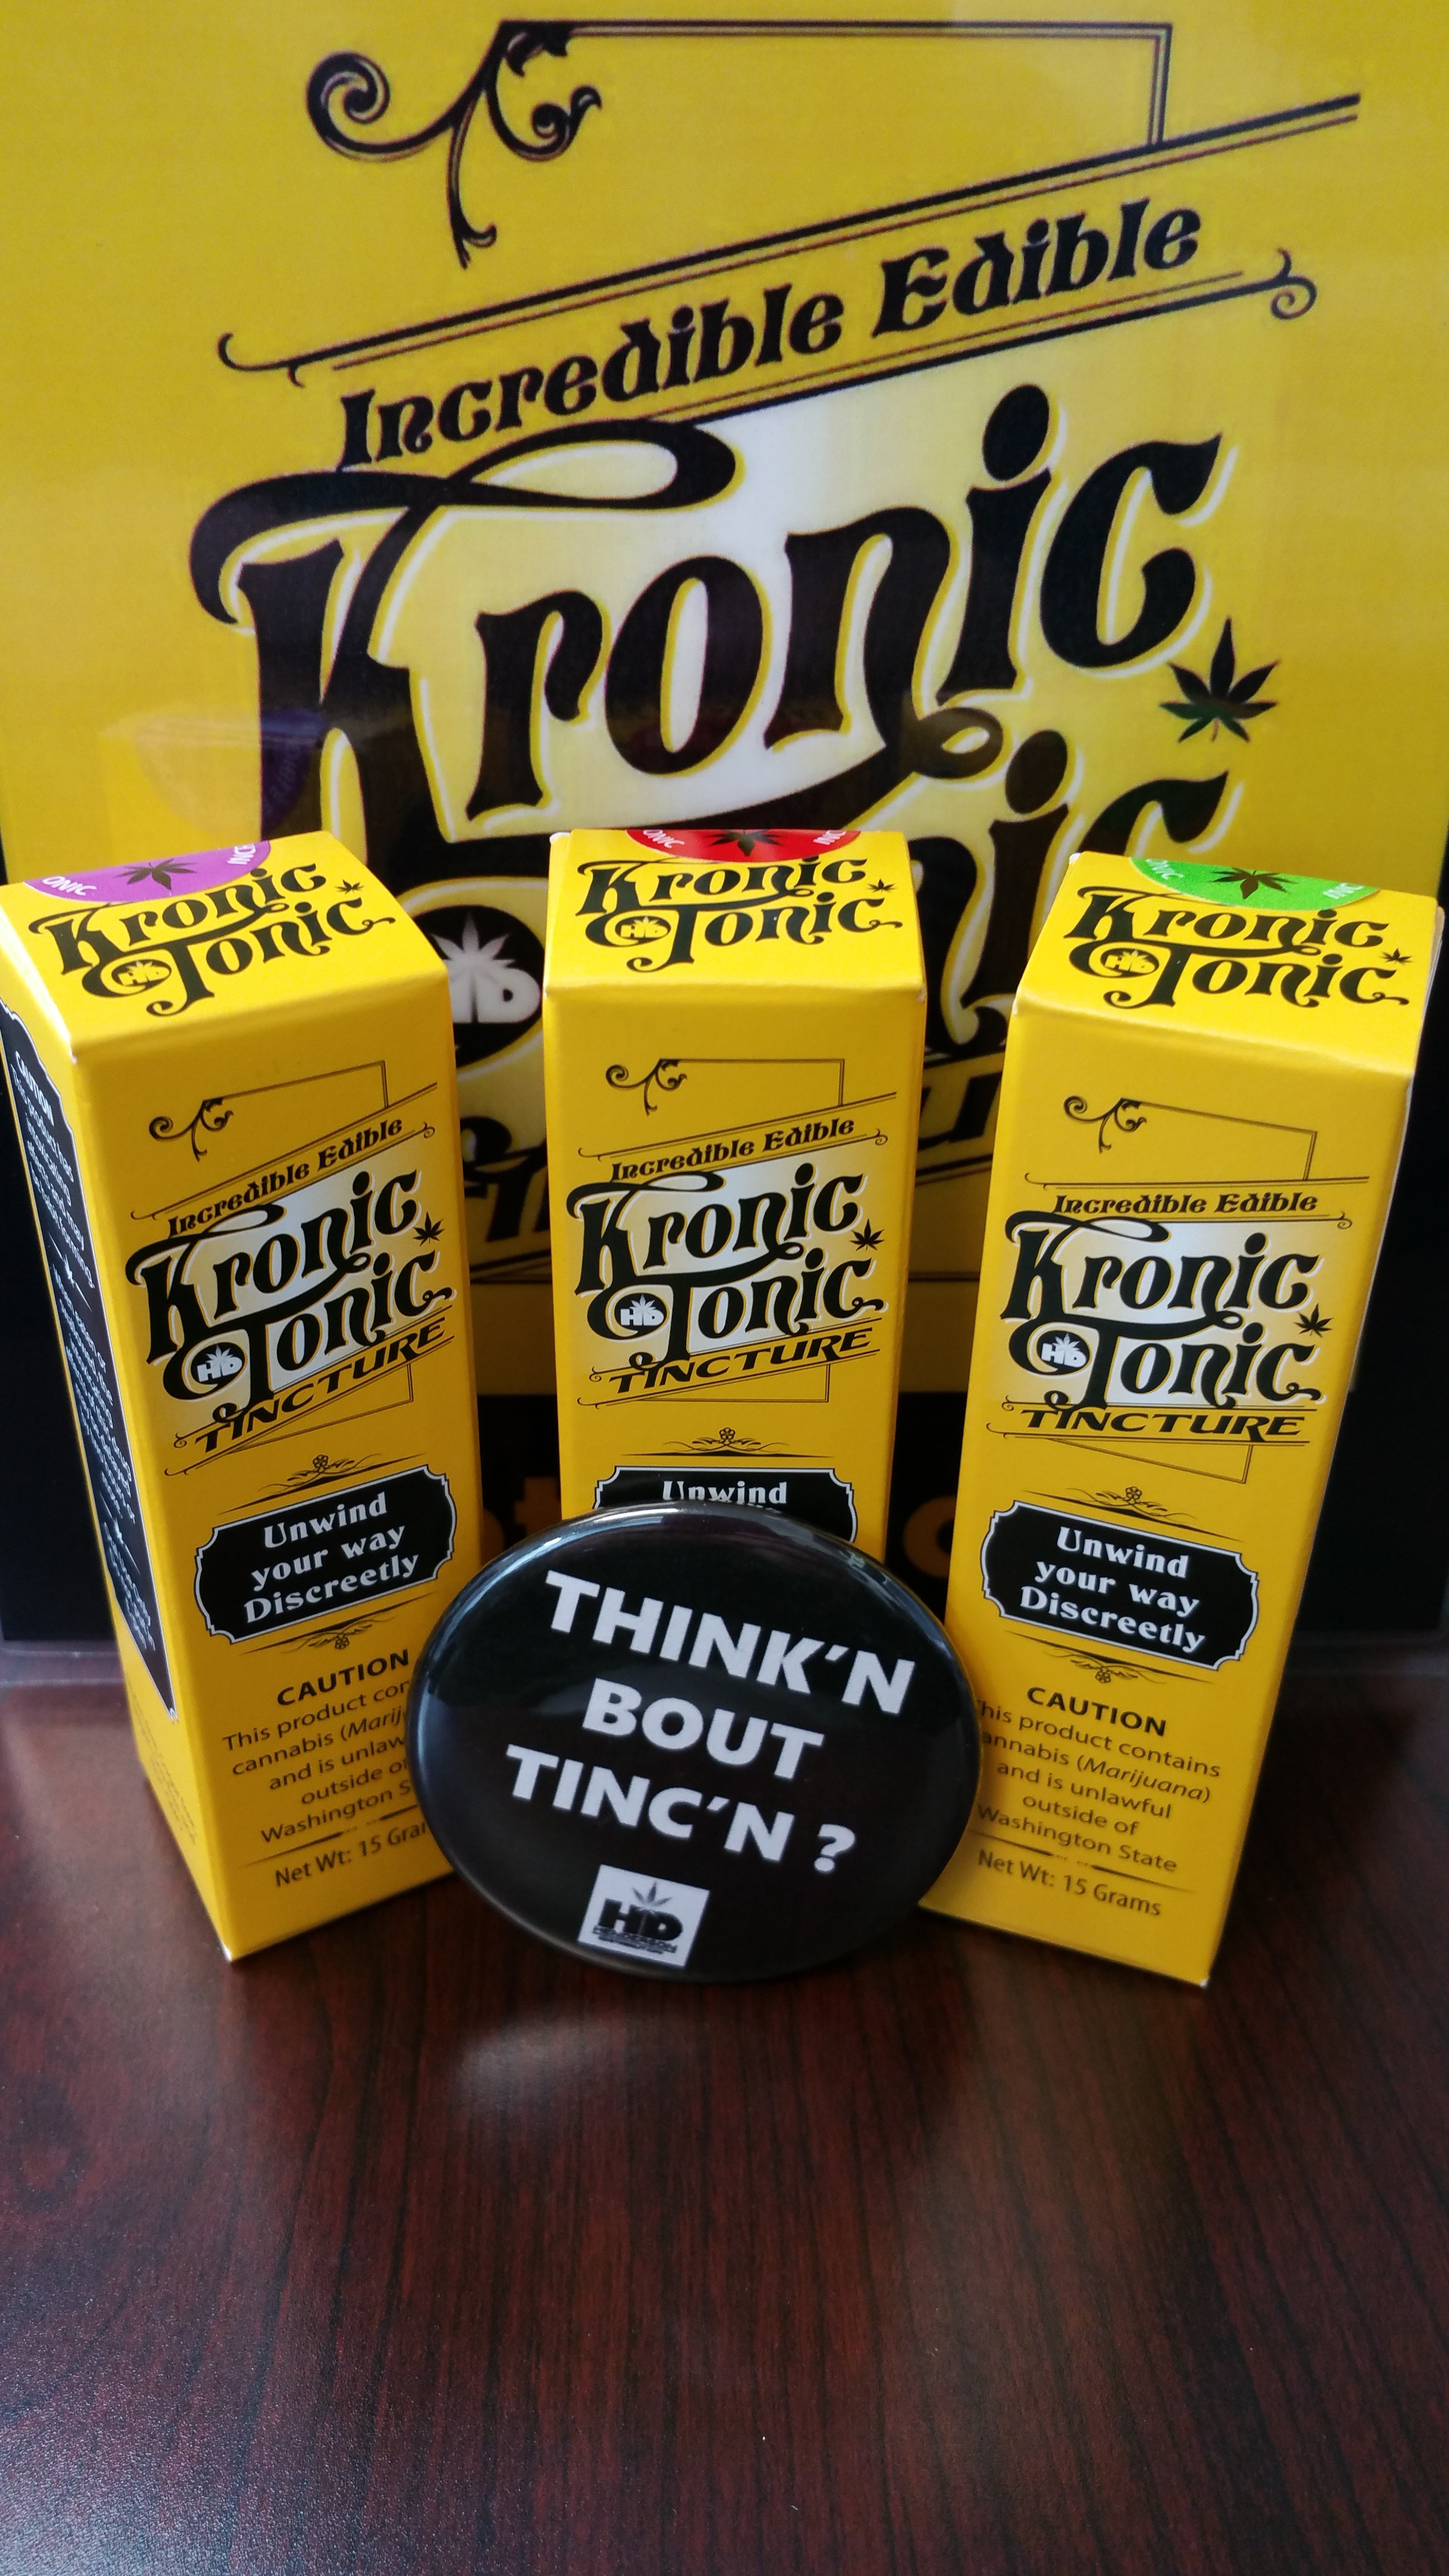 Tincture - Kronic Hd Tonic Indica Product image